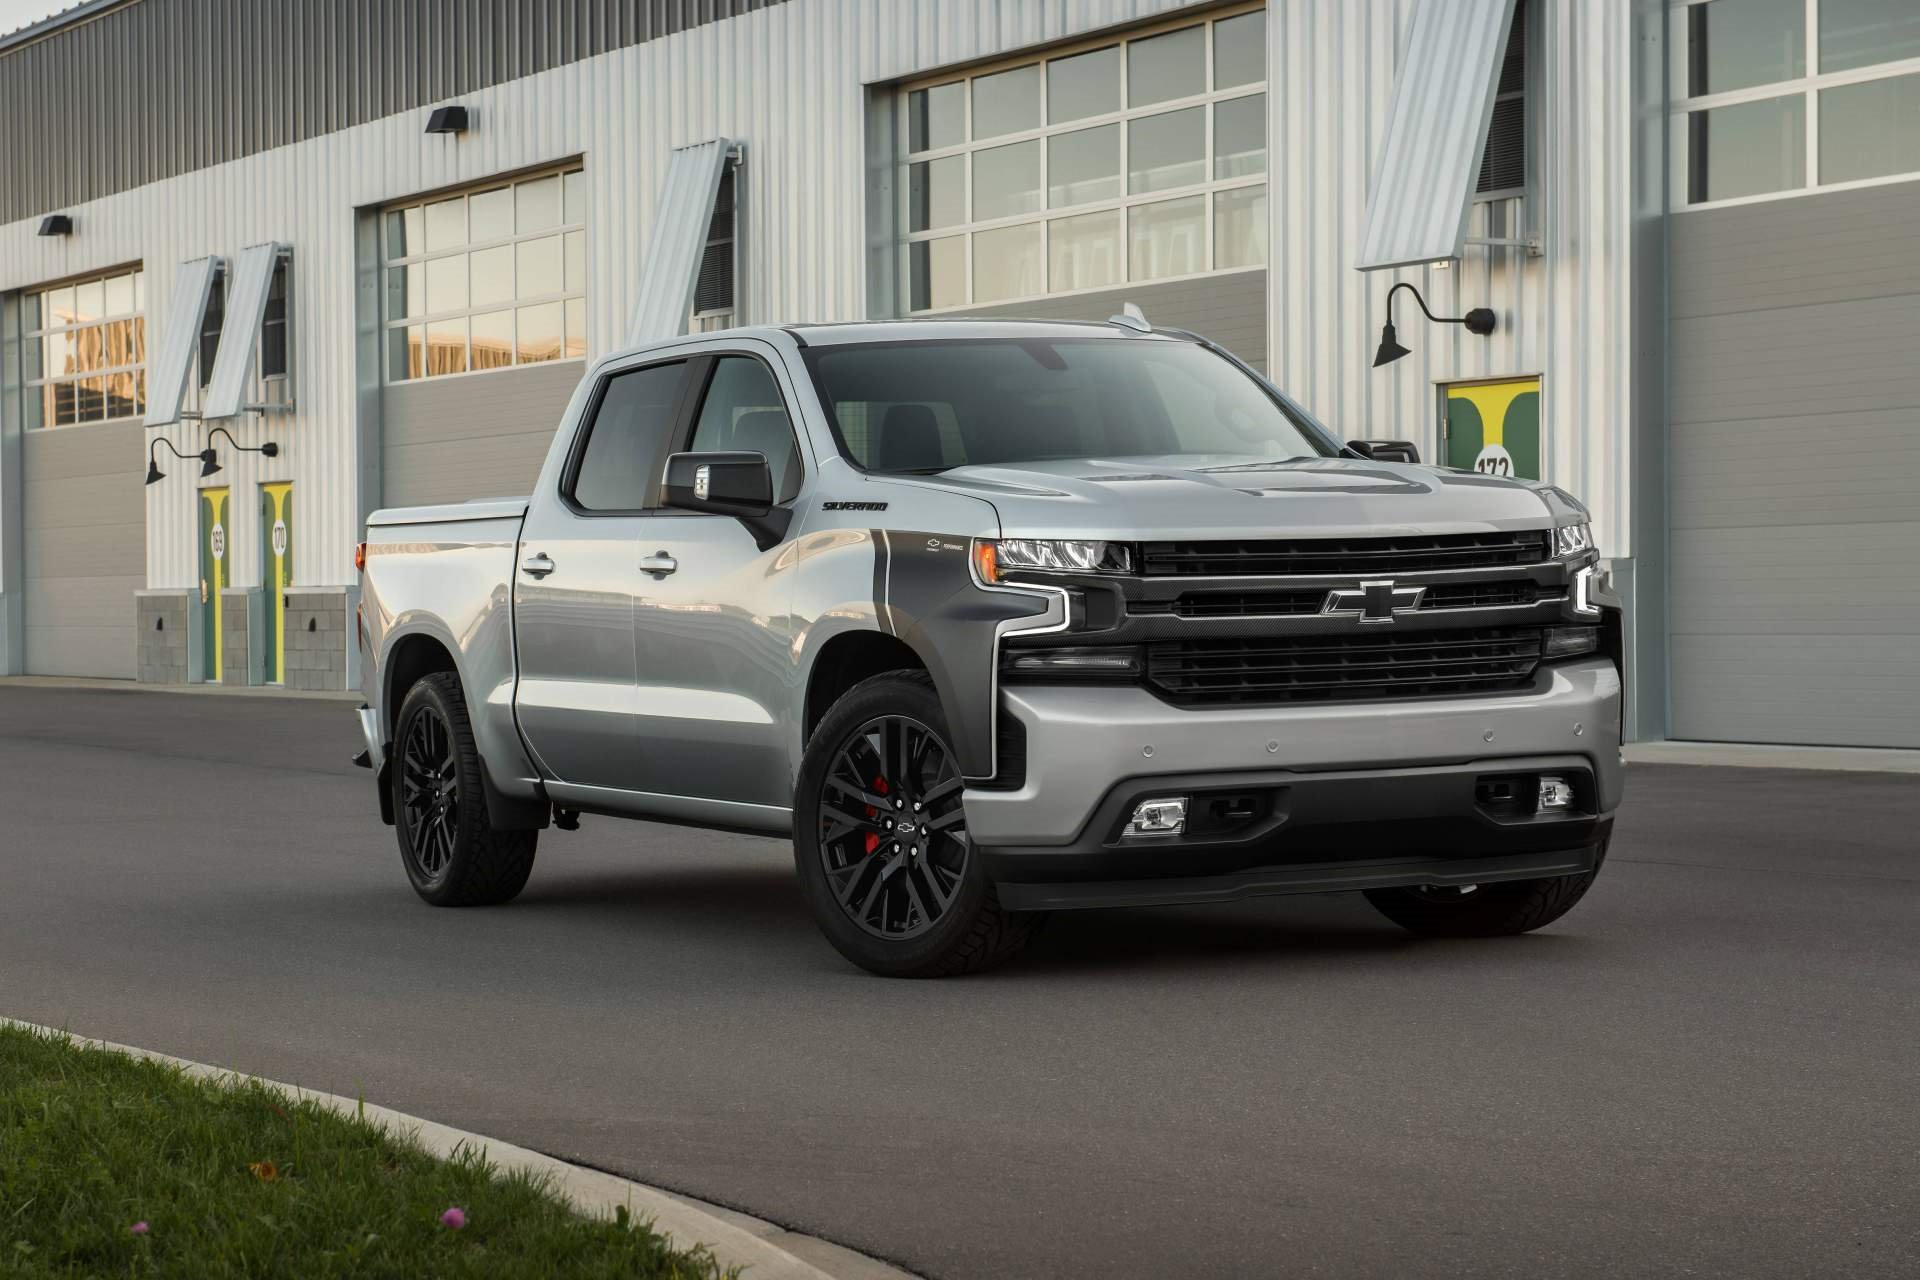 New 2019 Chevrolet-Silverado 1500 Custom Trail Boss Silverado 1500 Custom Trail Boss for sale $41,900 at M and V Leasing in Brooklyn NY 11223 1